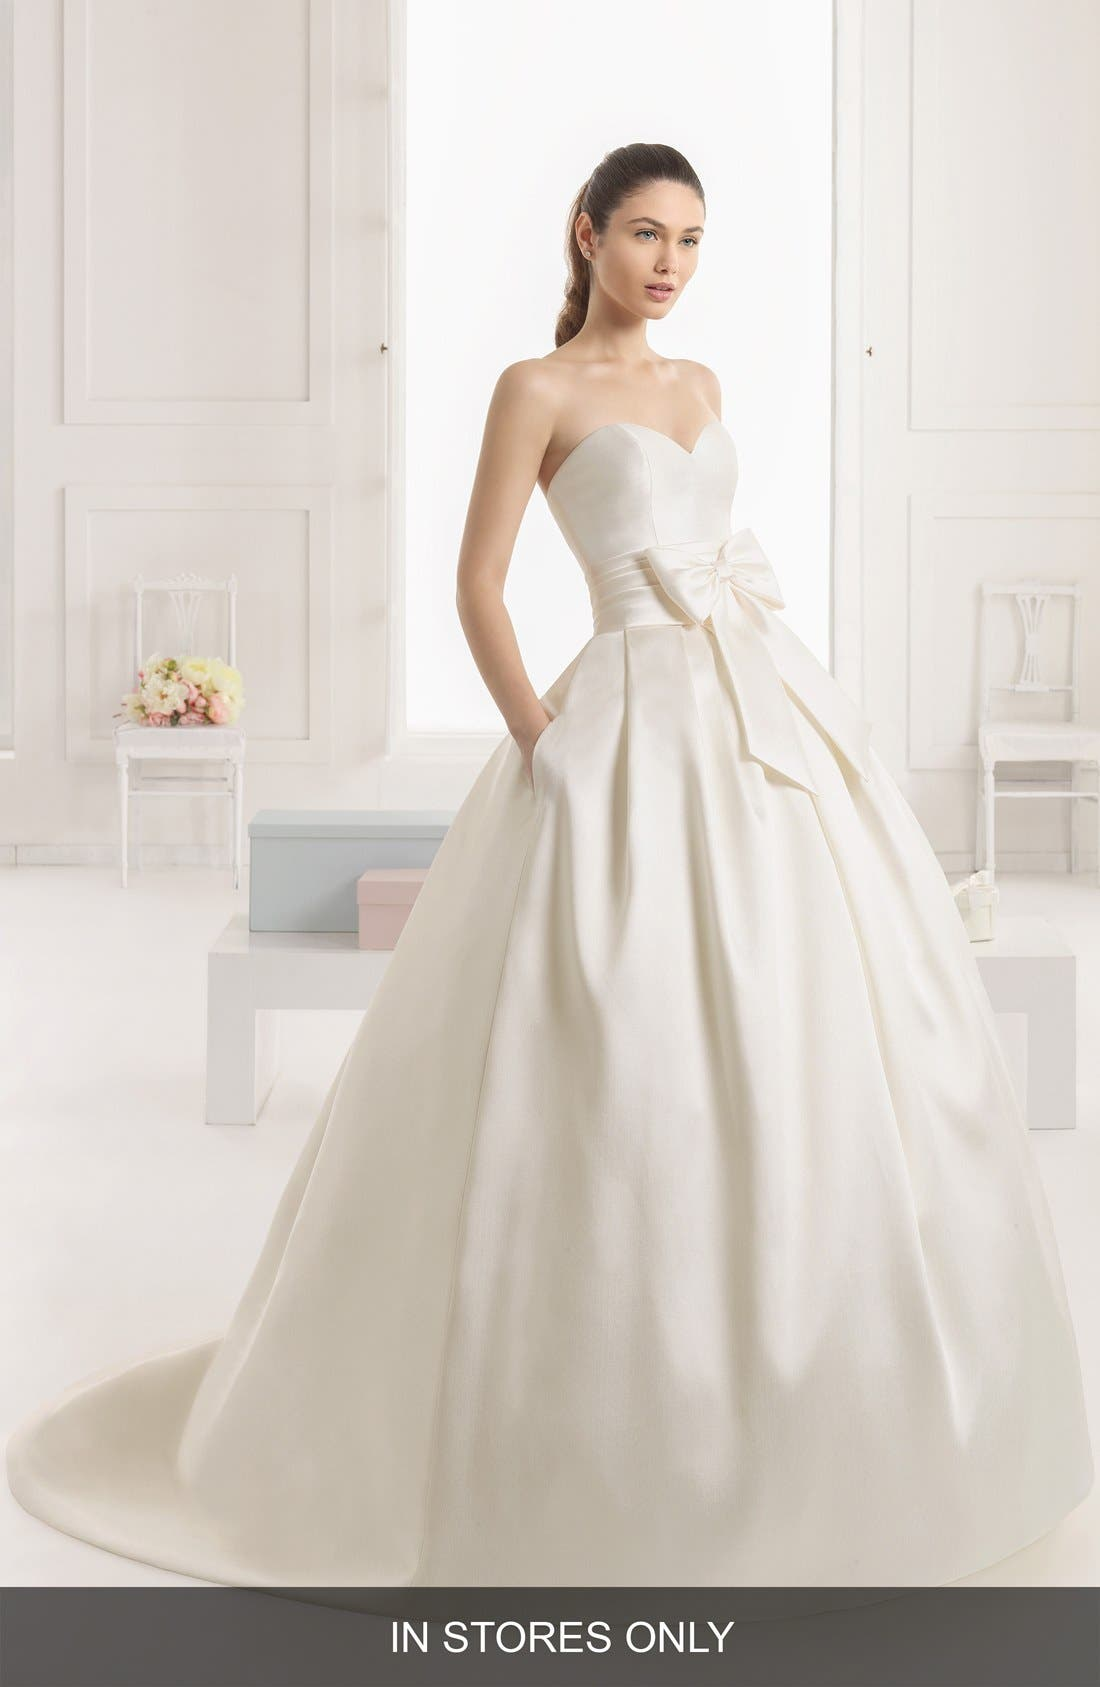 Rosa Clará Enebro Strapless Bow Ballgown Dress,                             Main thumbnail 1, color,                             IVORY